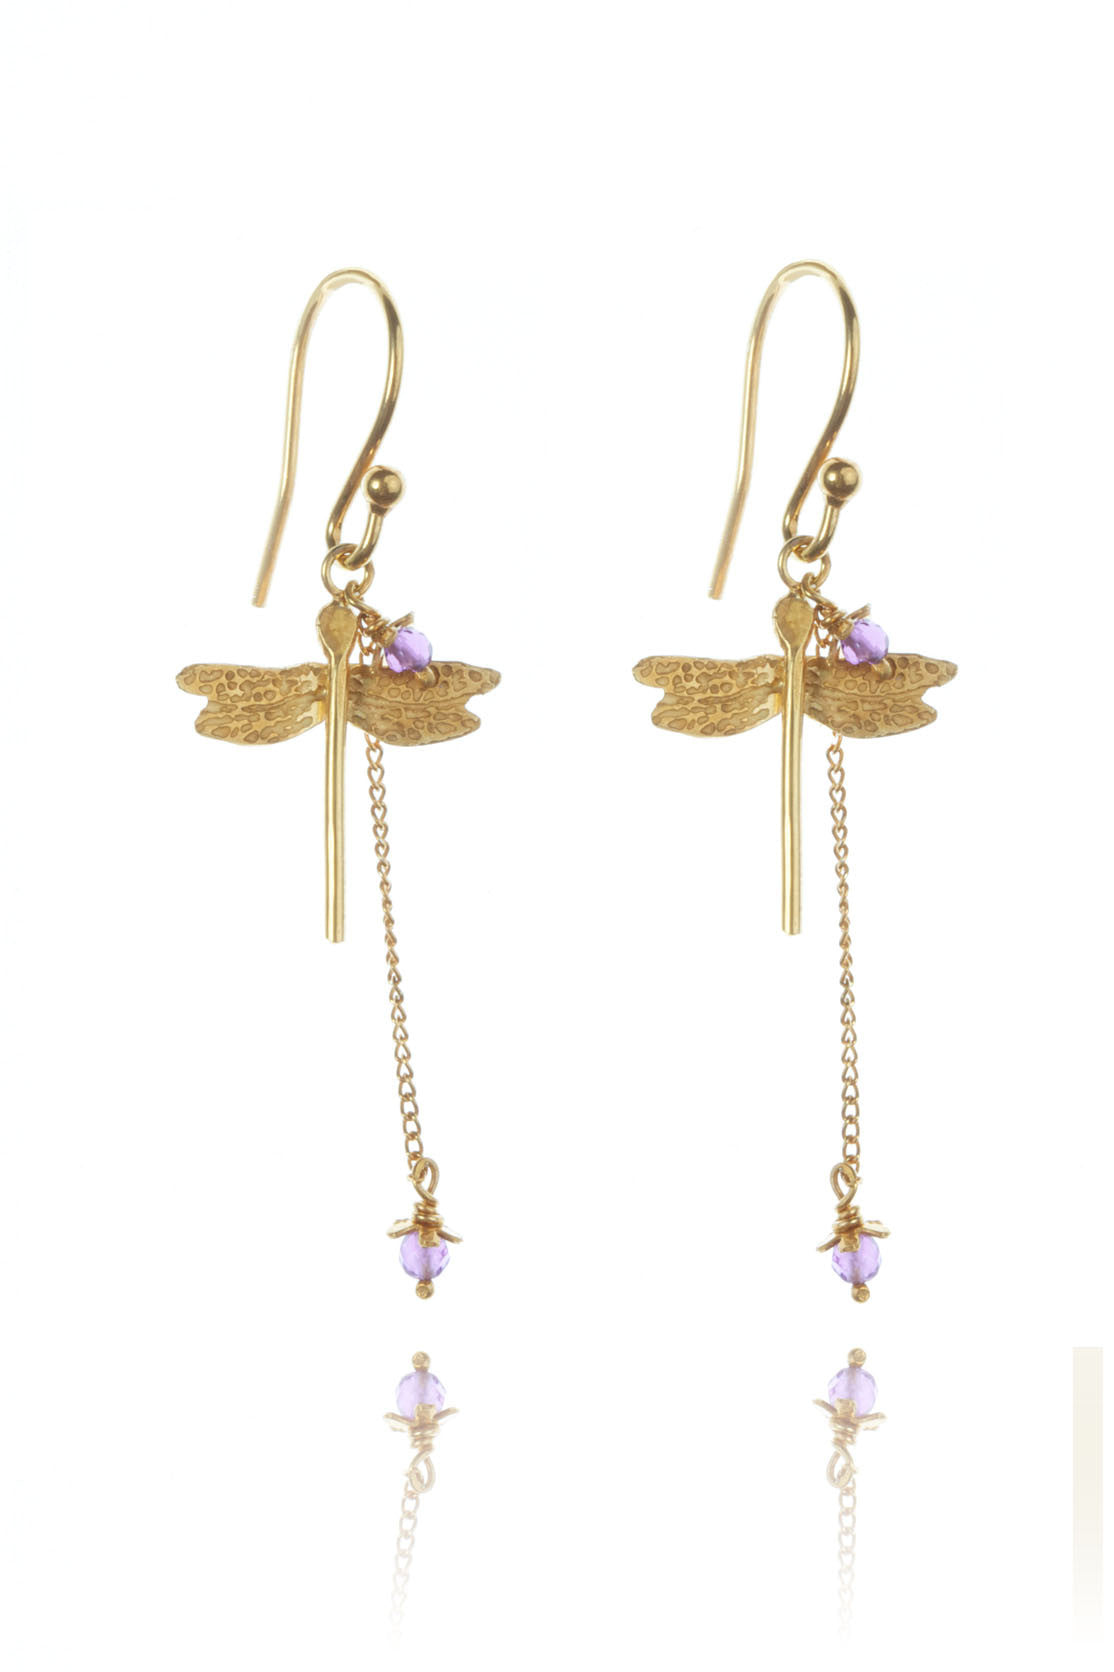 Dragonfly and Little Flower Earrings